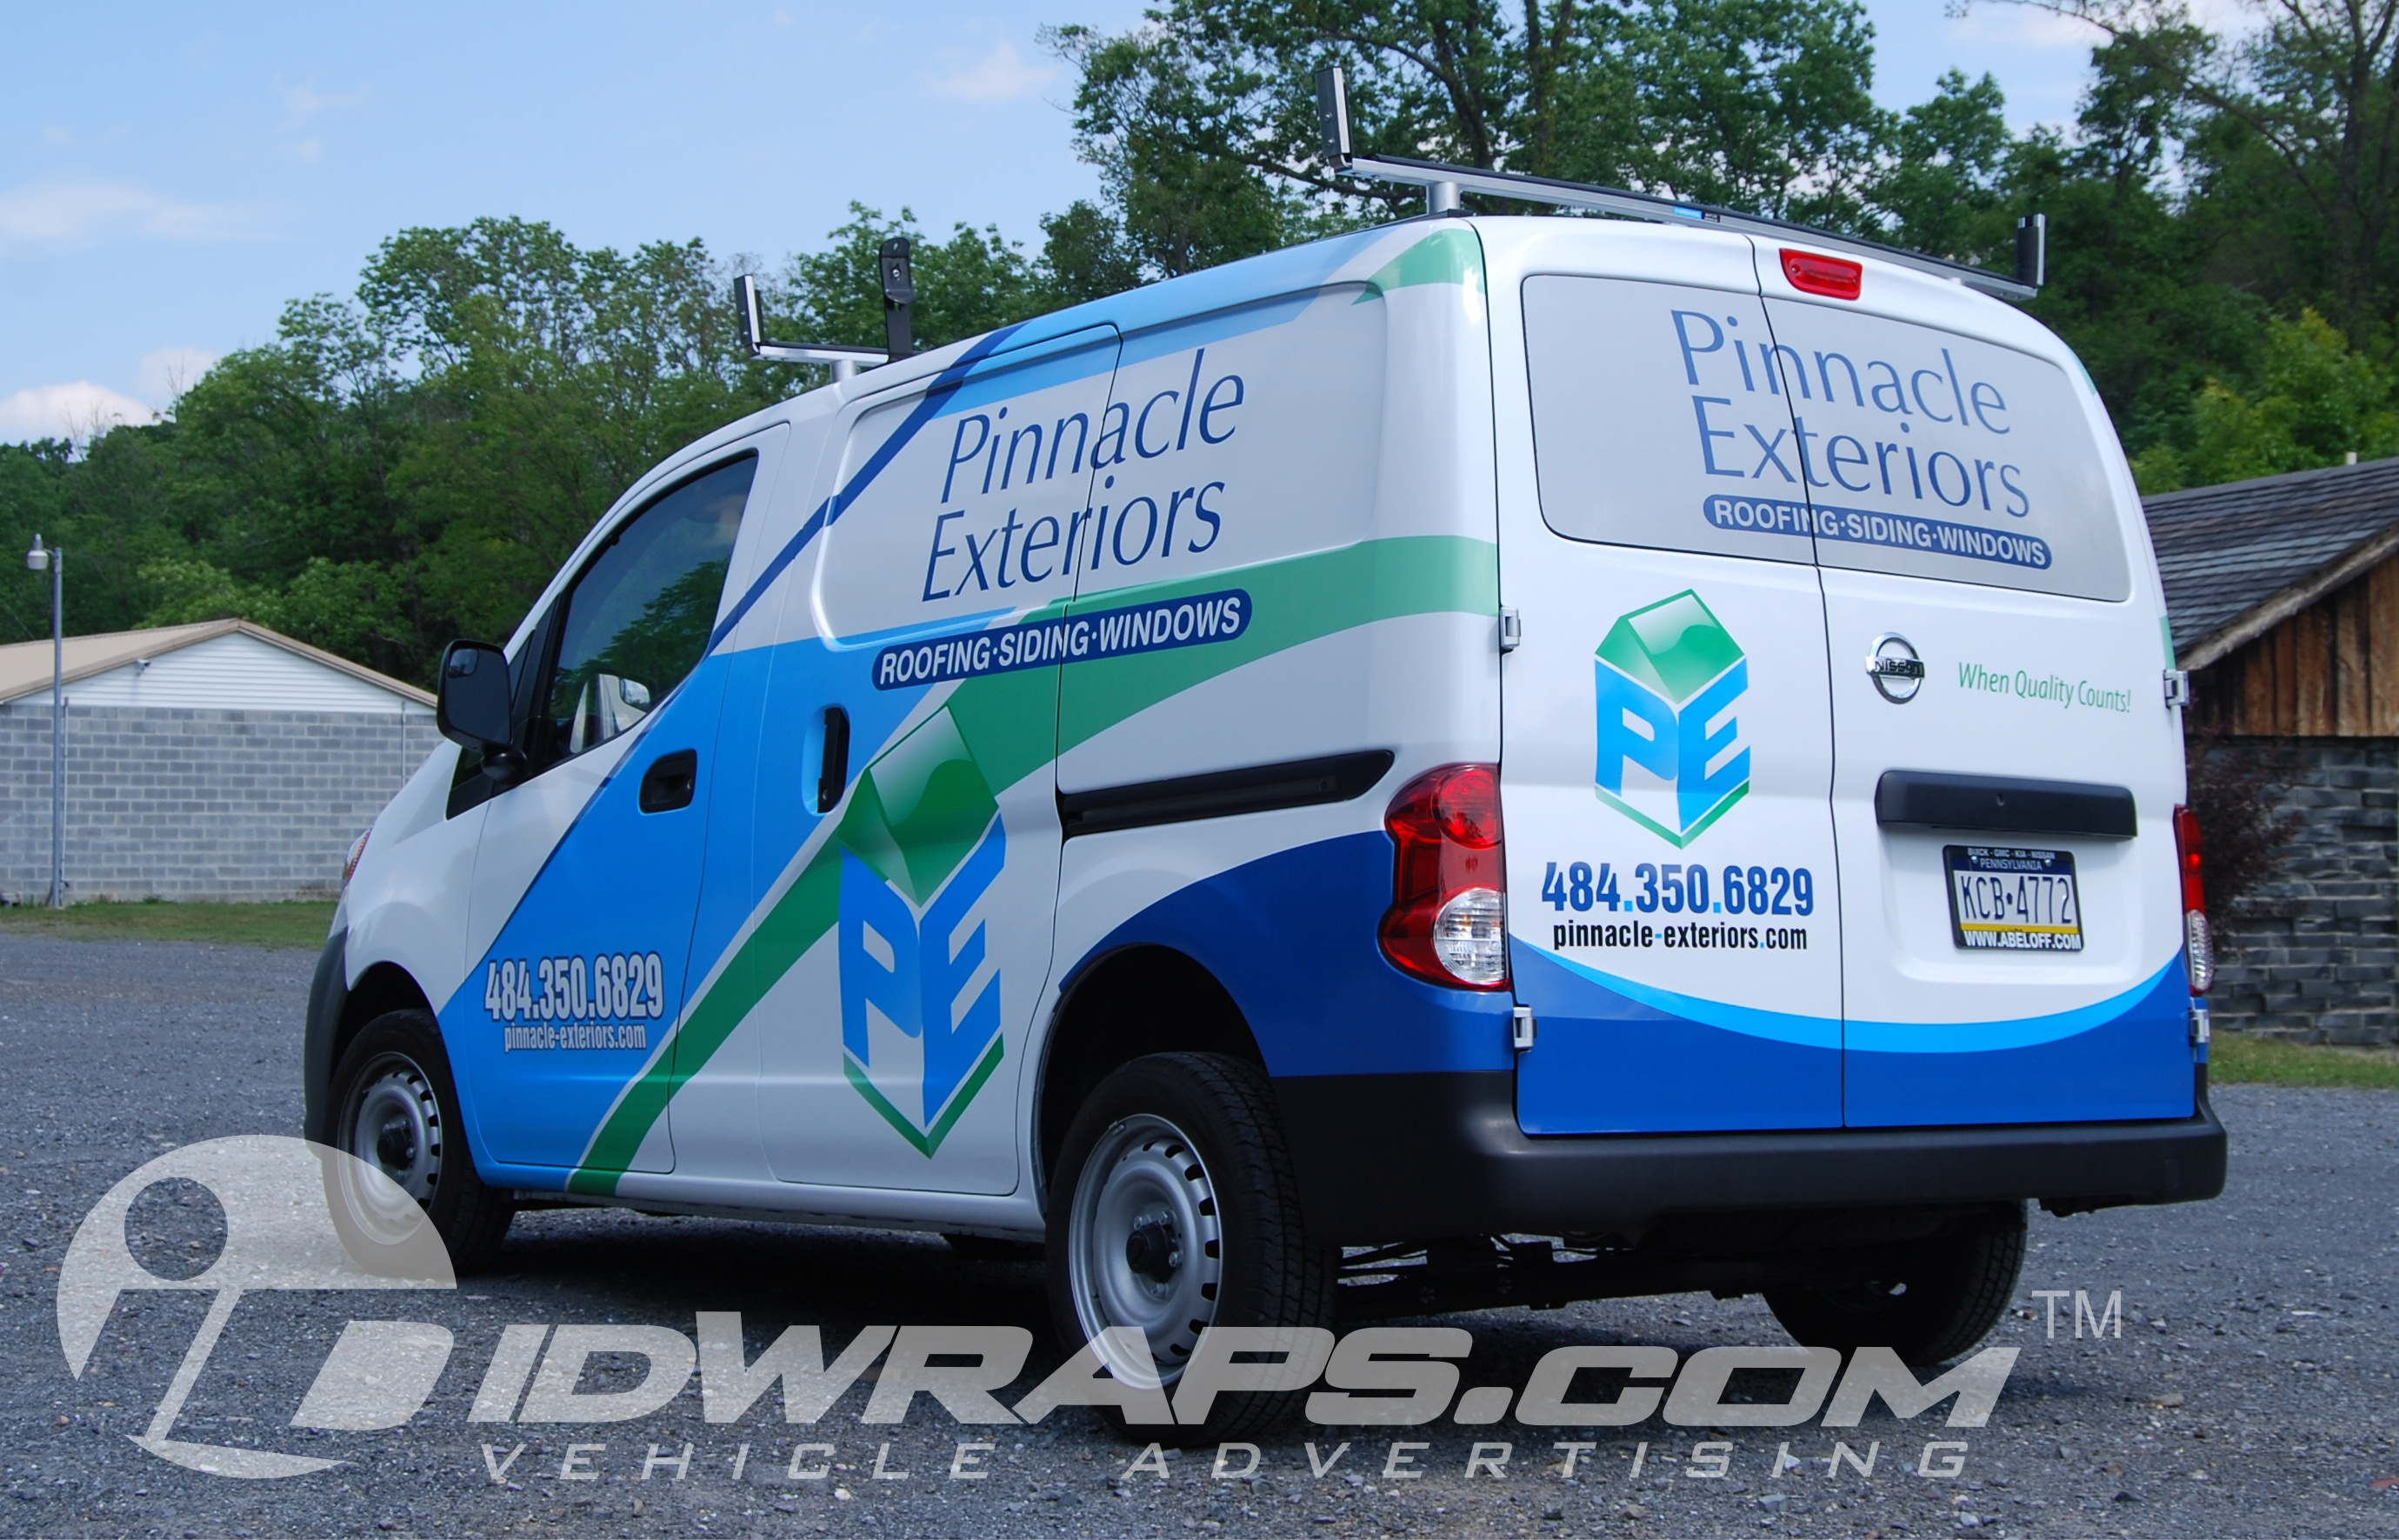 contractor-wrap-graphics-pinnacle-exteriors-nv200-3m-vinyl